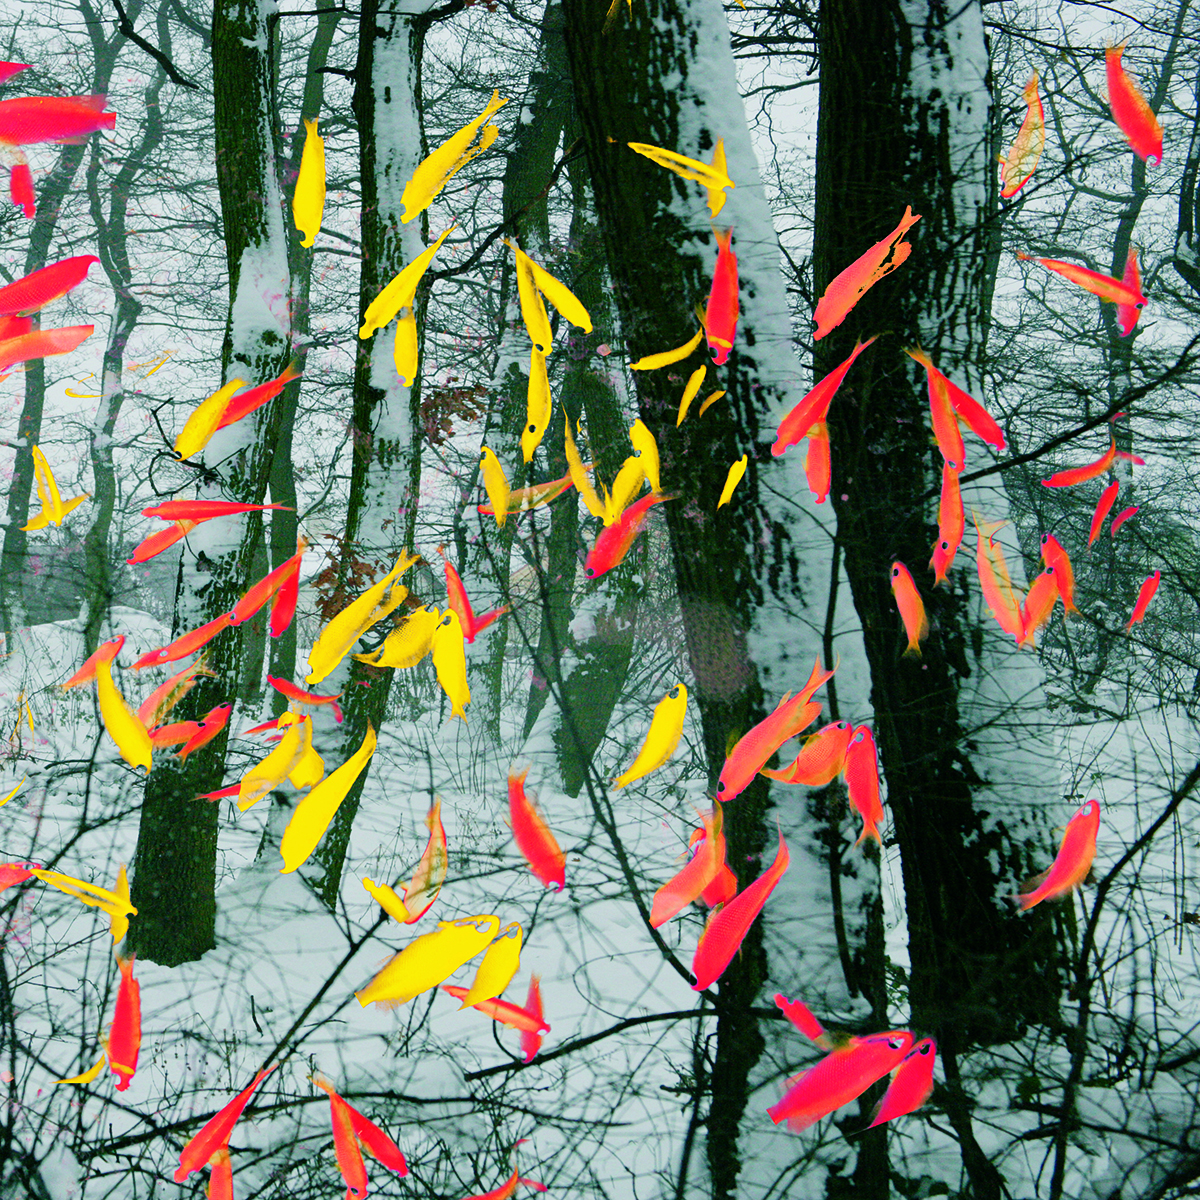 Fishes in the woods/ Ryby v lese